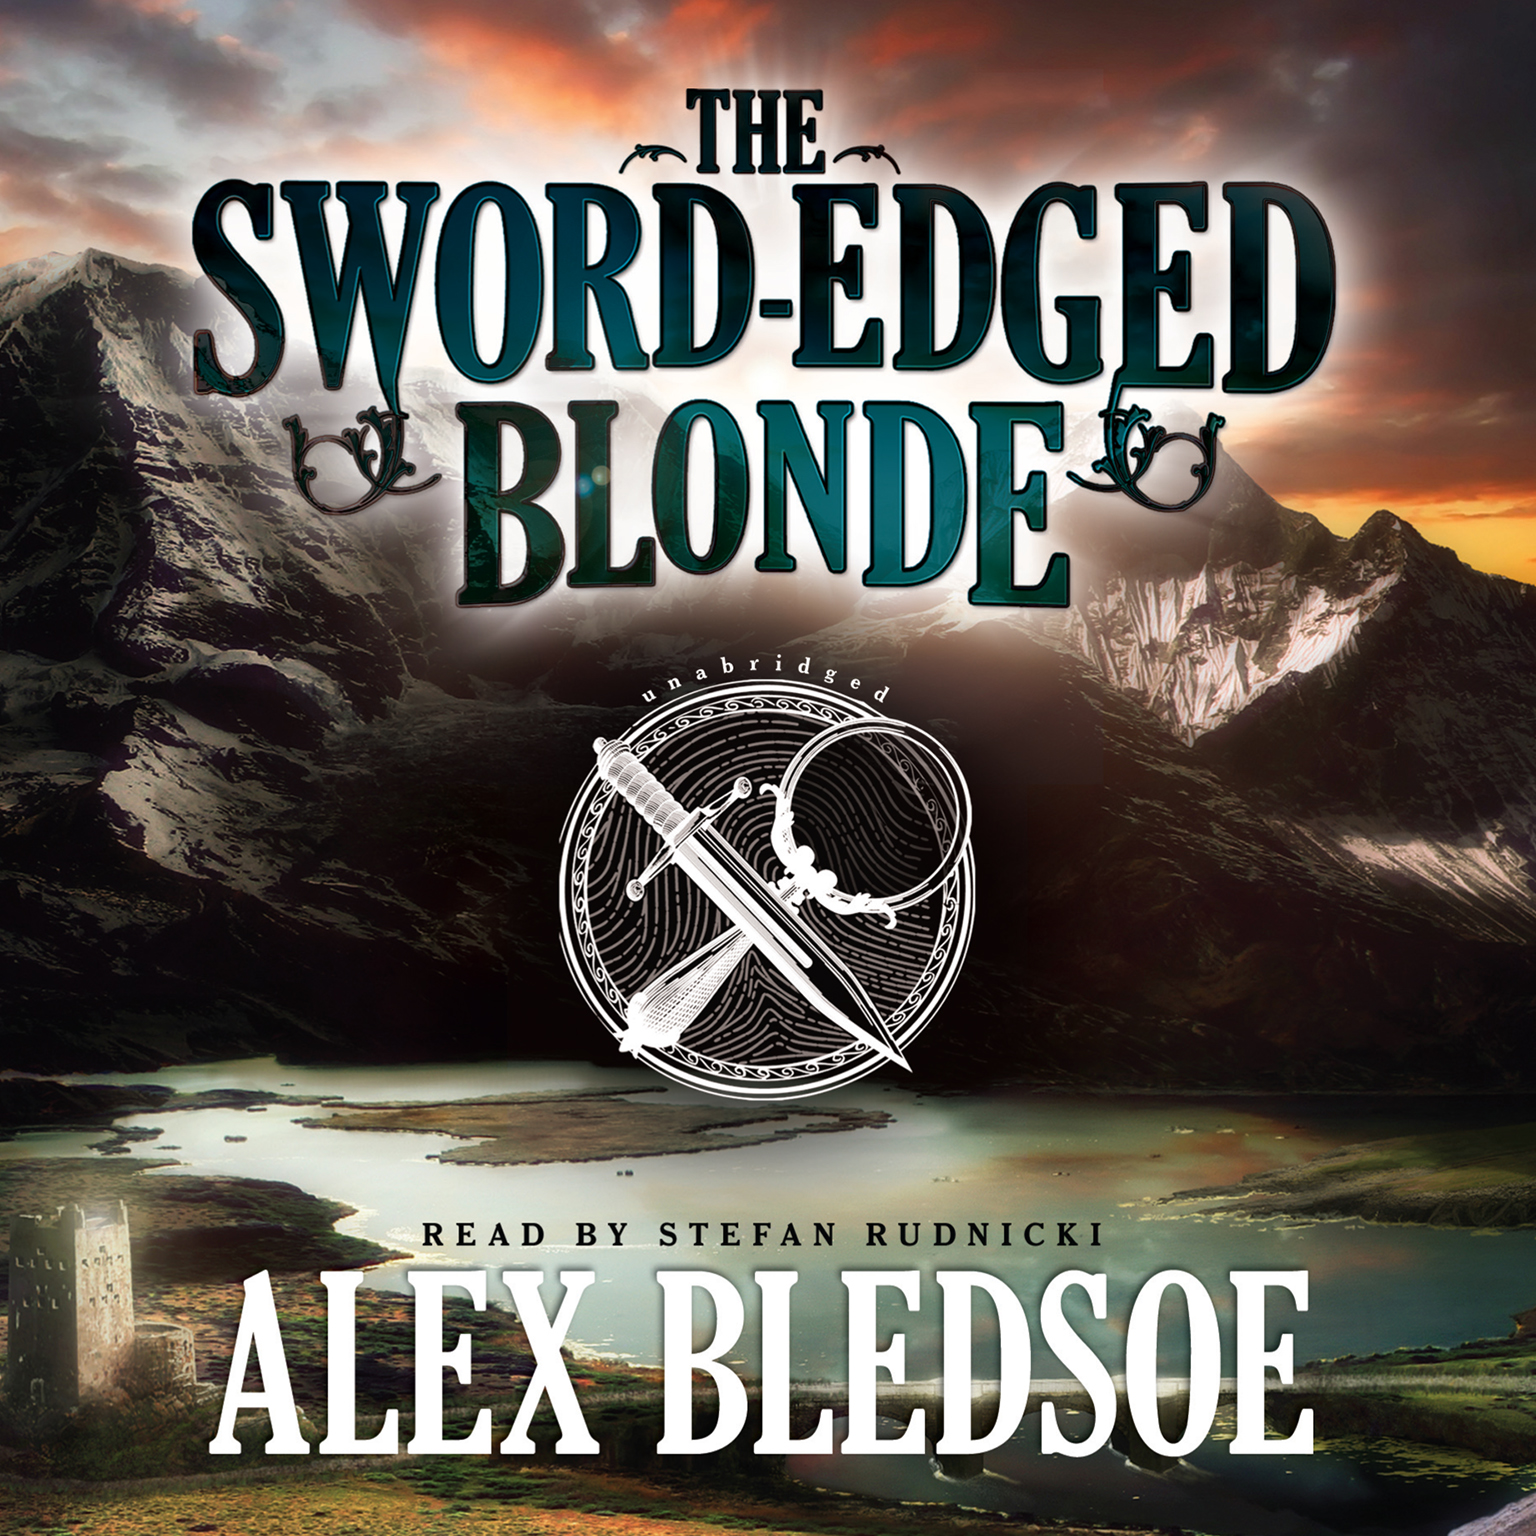 Printable The Sword-Edged Blonde Audiobook Cover Art